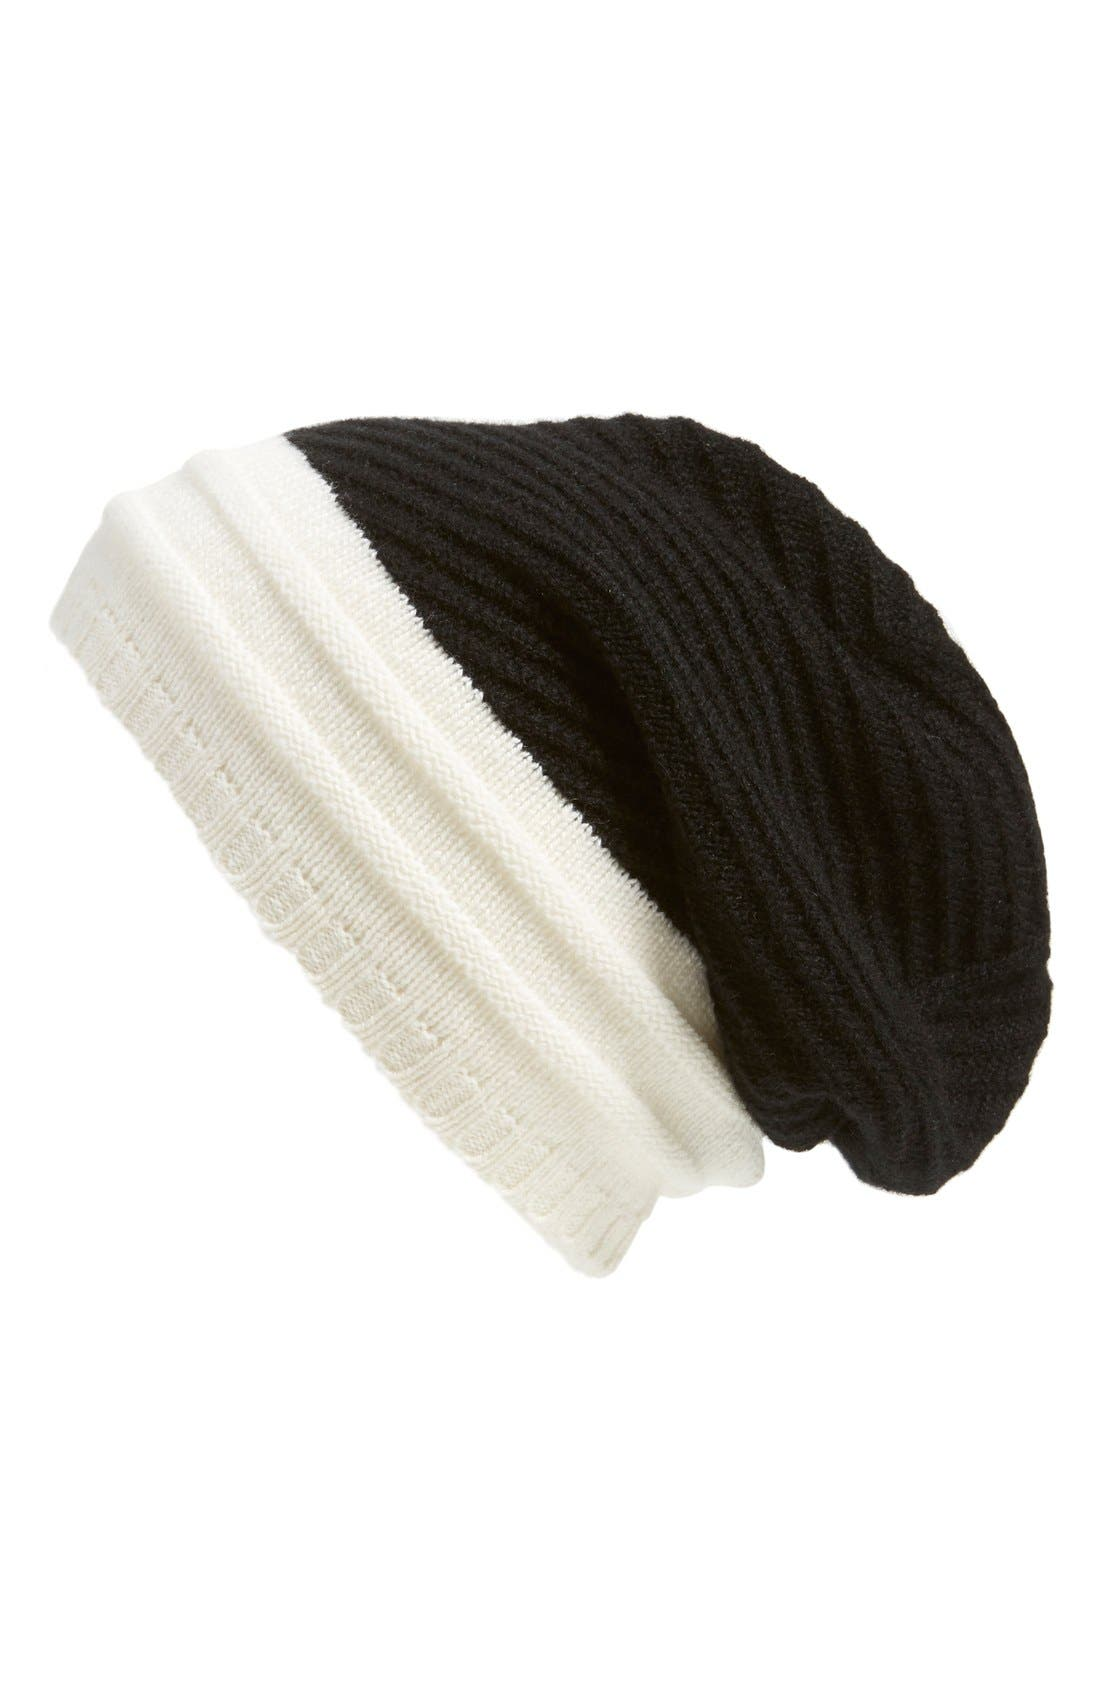 Alternate Image 1 Selected - Echo Cashmere Colorblock Beanie